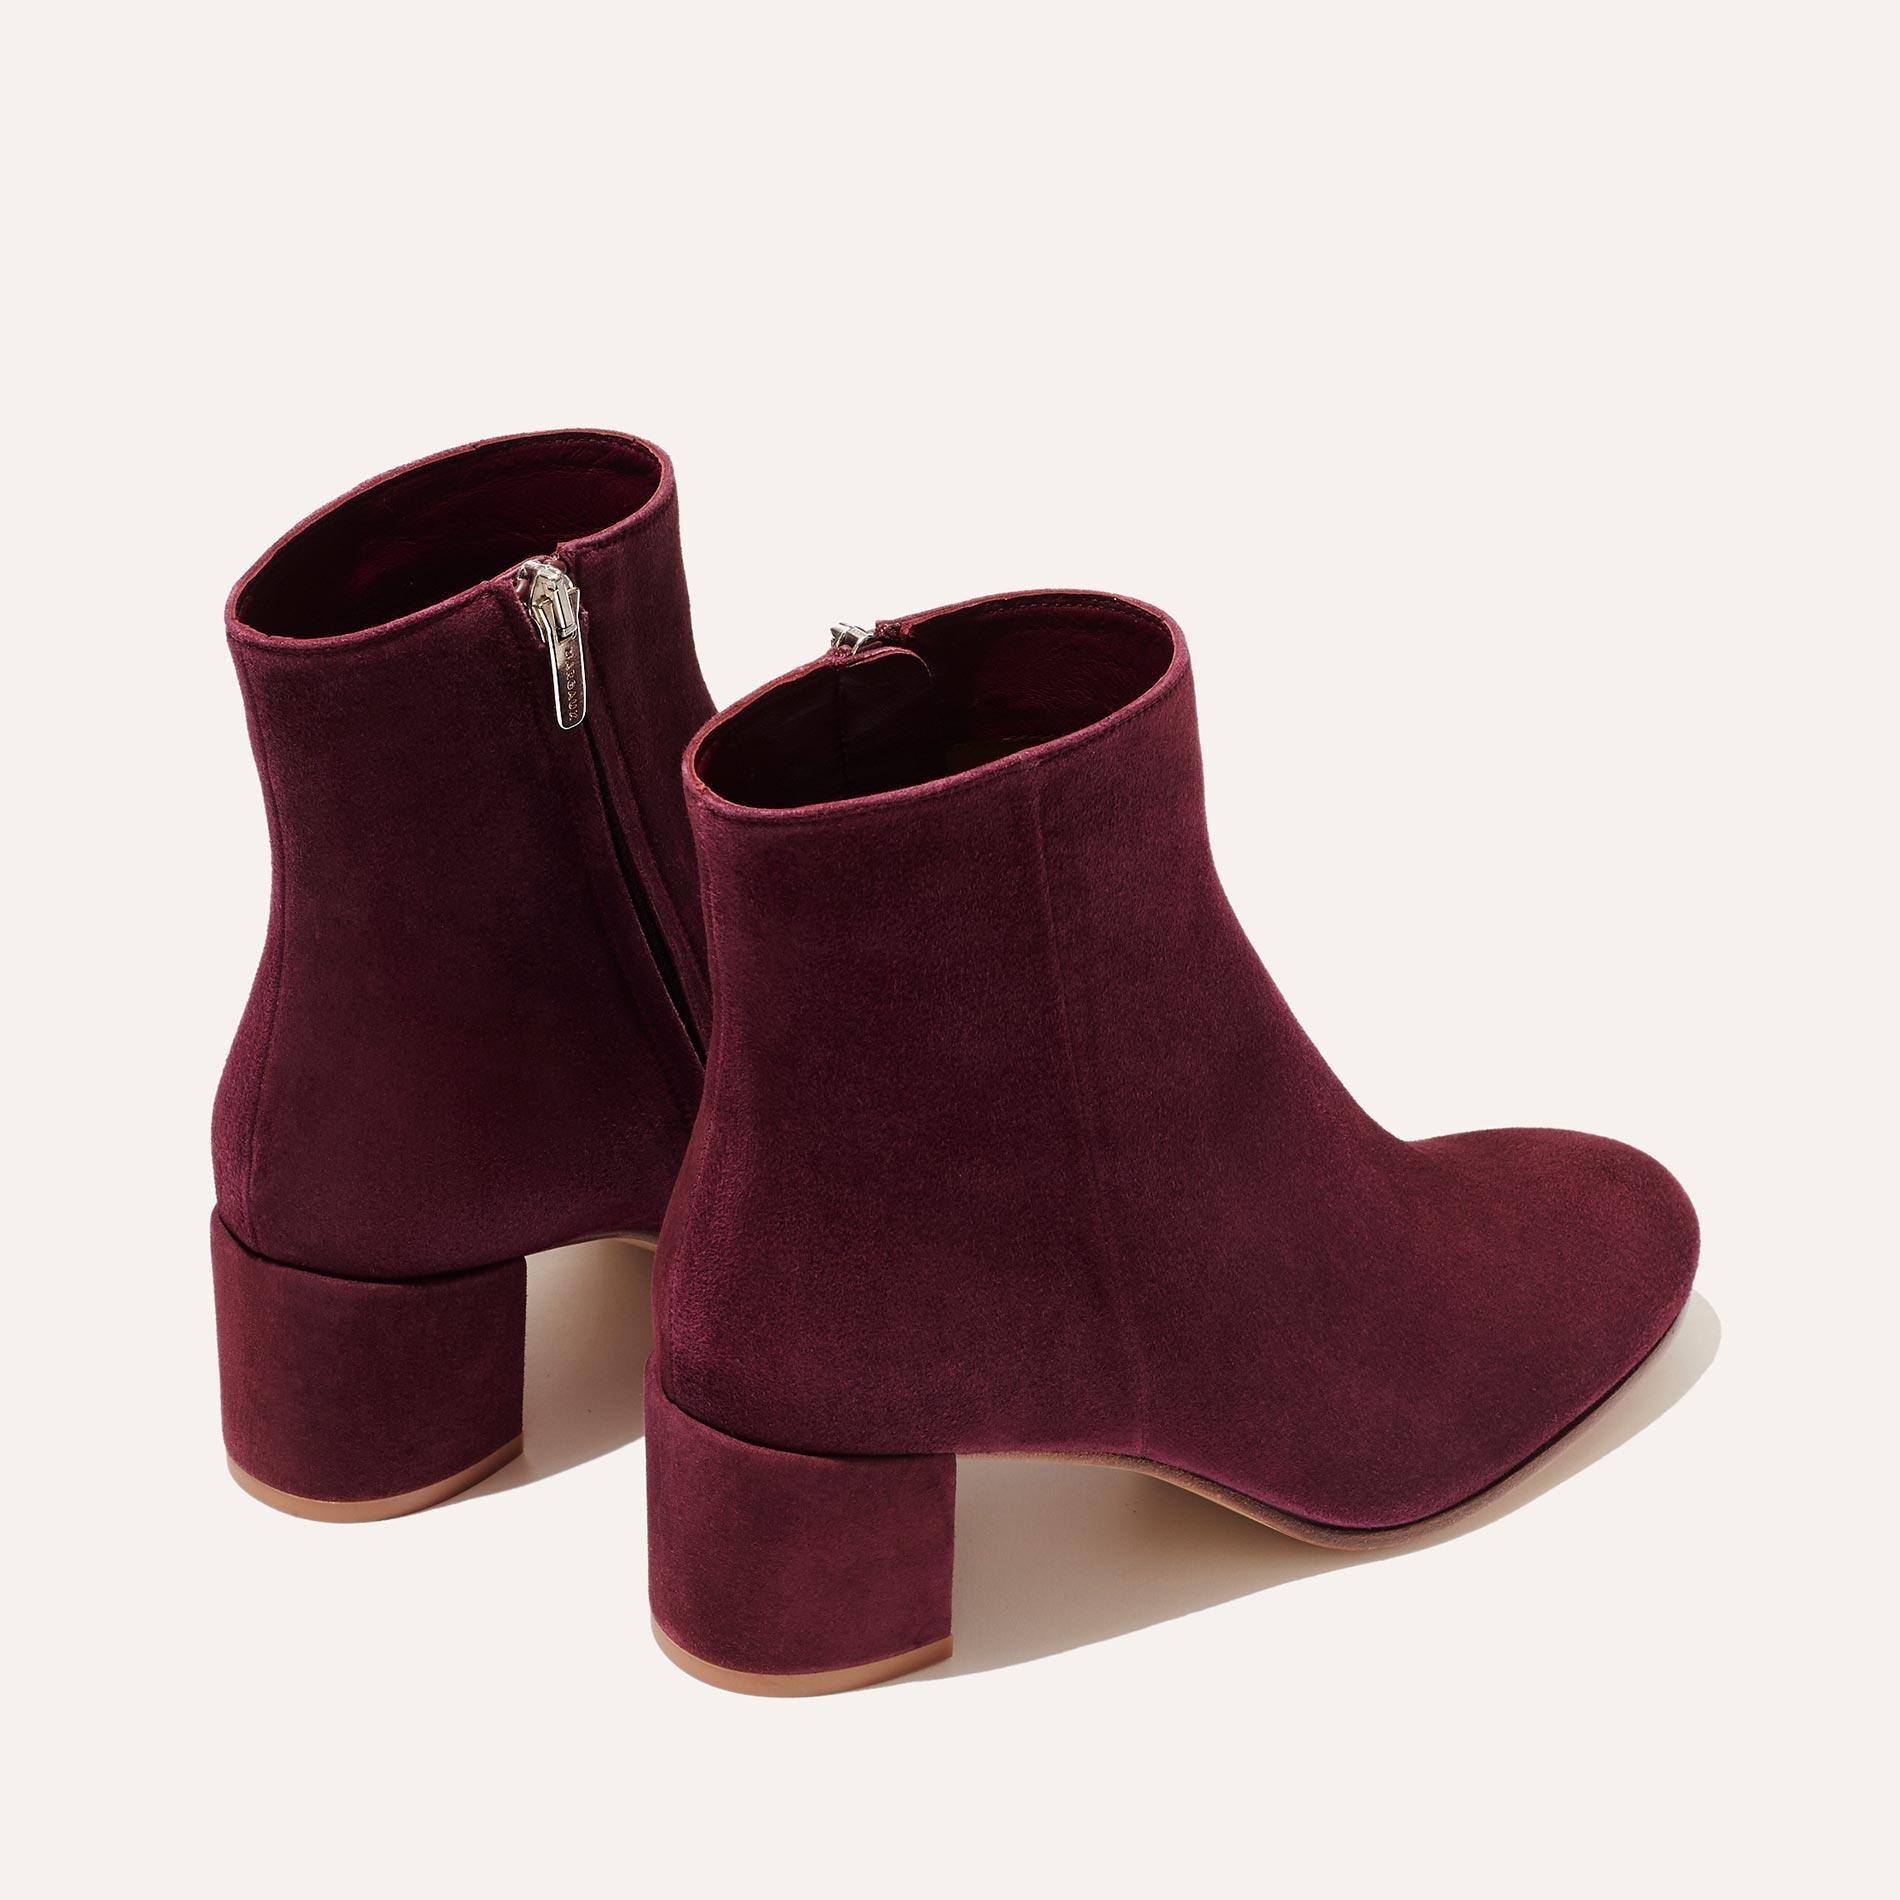 The Boot - Mulberry 2